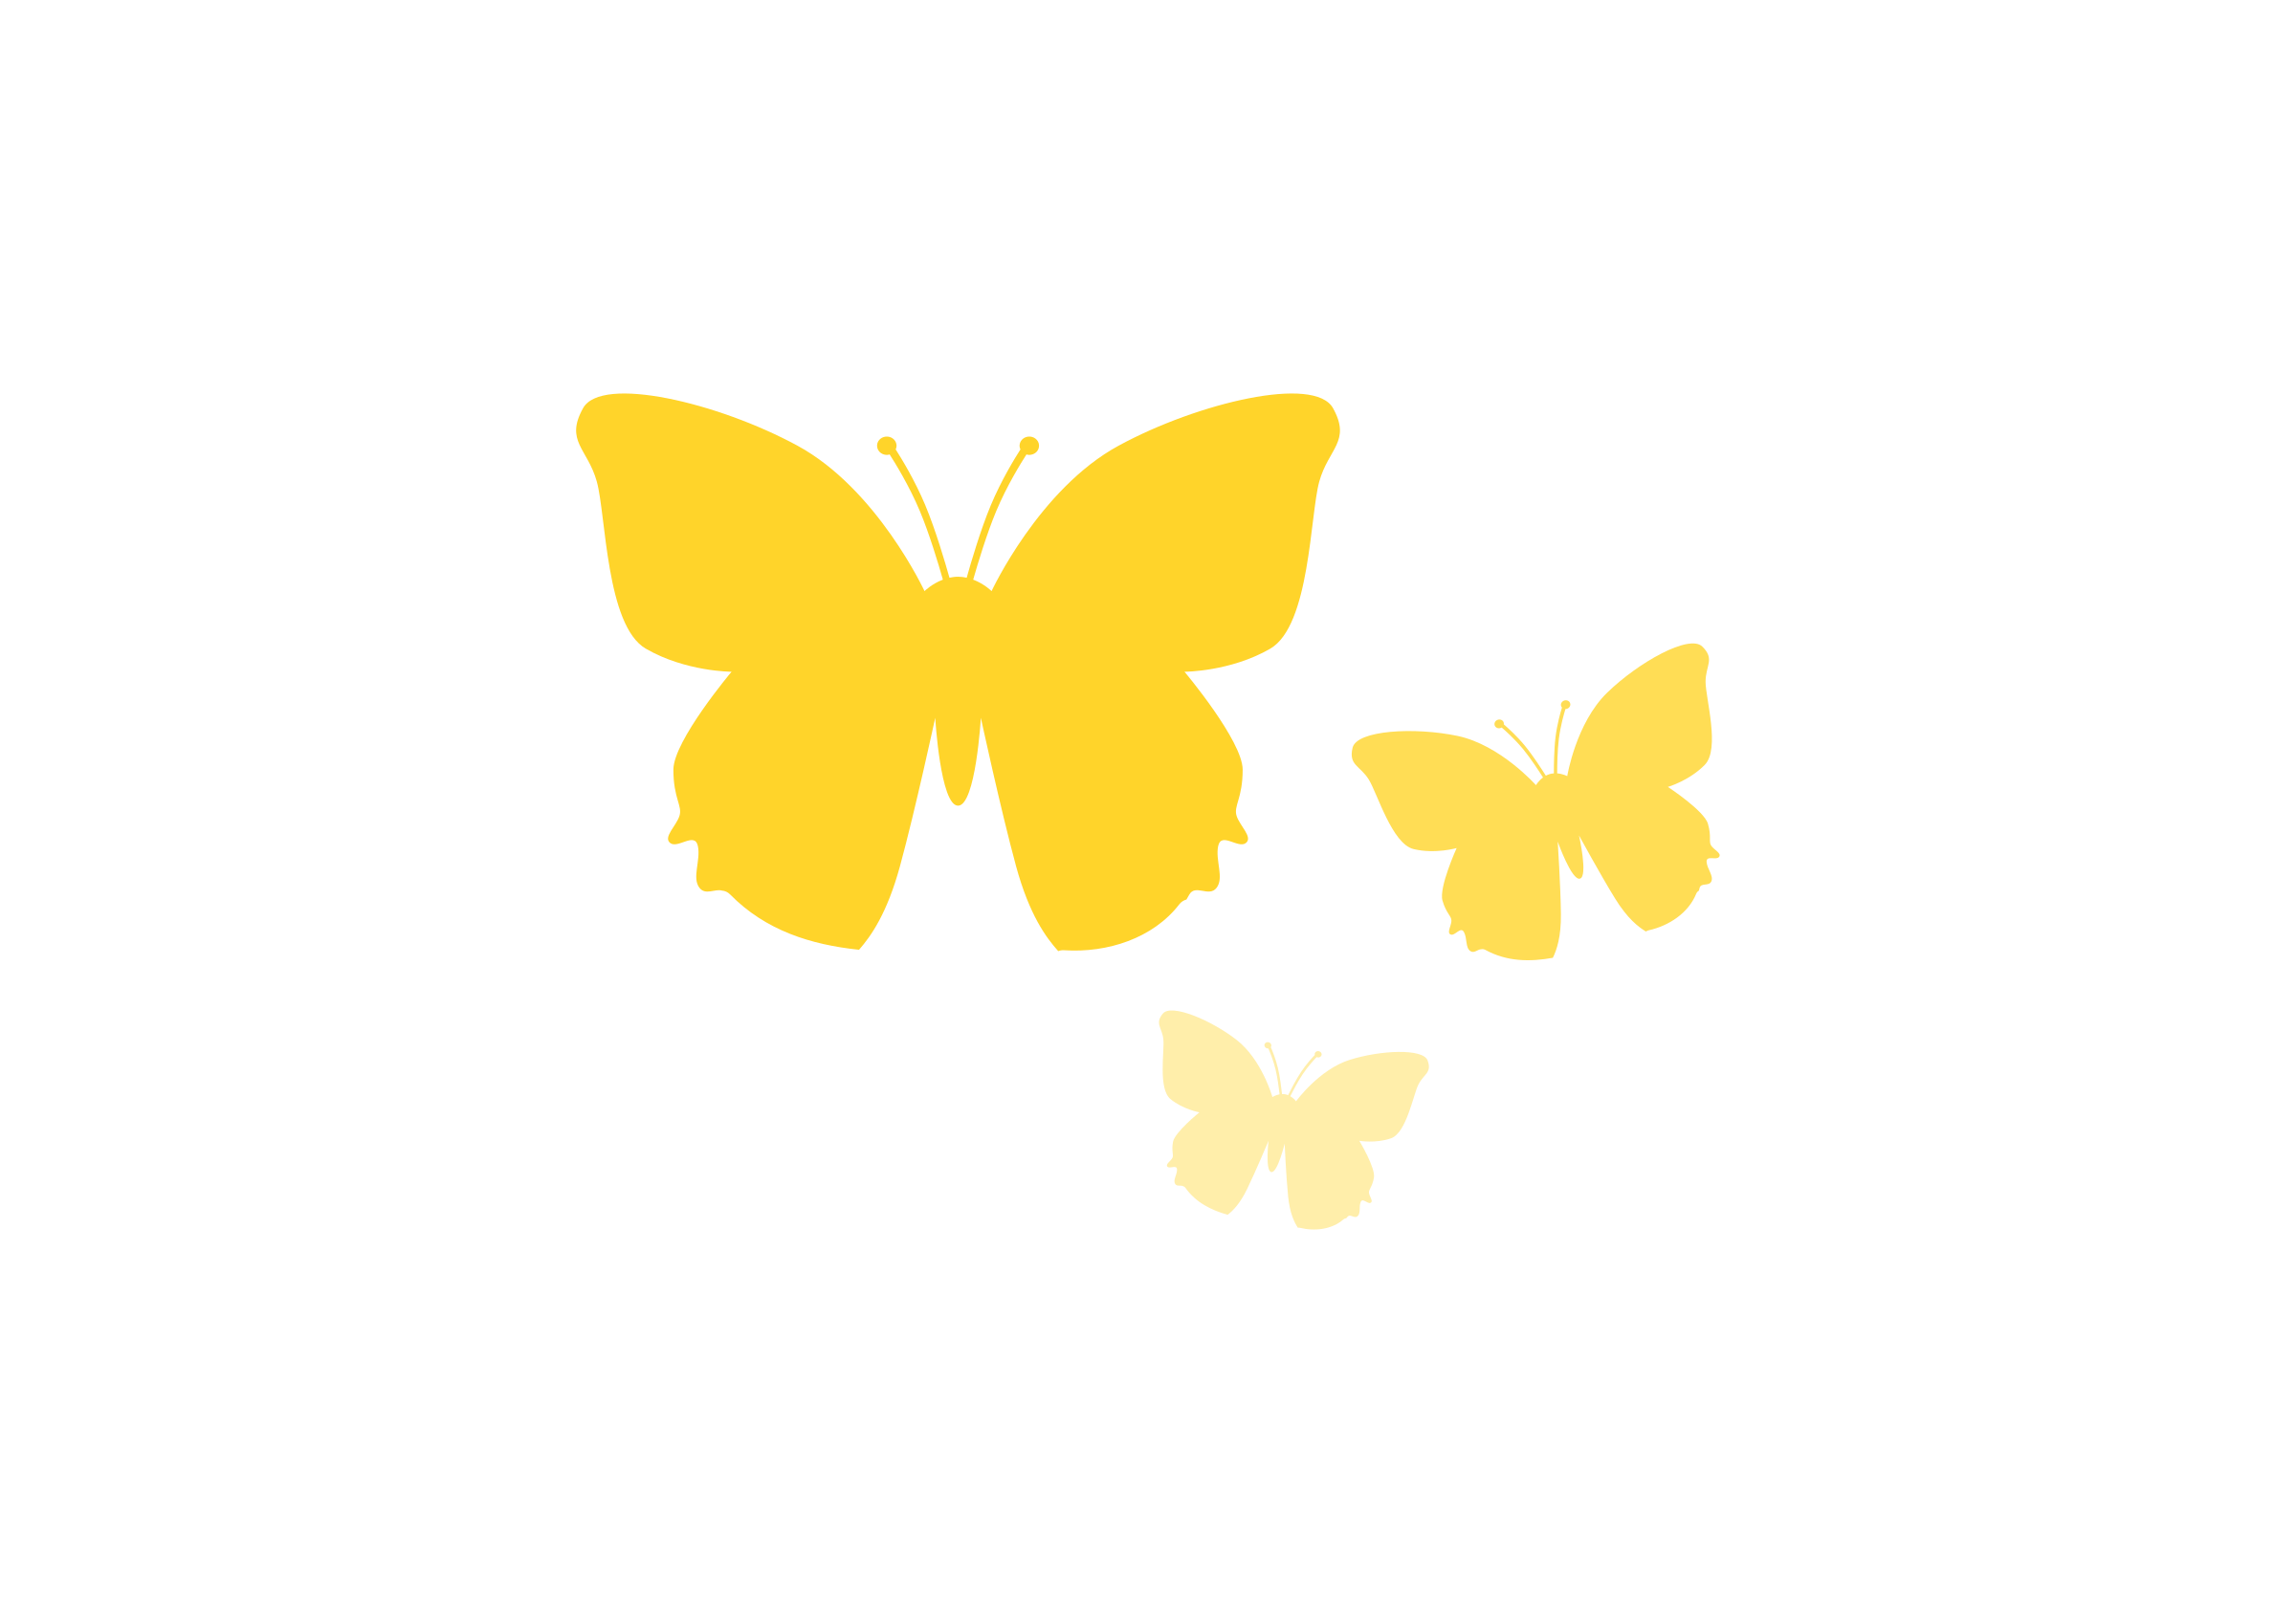 Butterfly clipart light yellow Art Yellow Library Clip Yellow